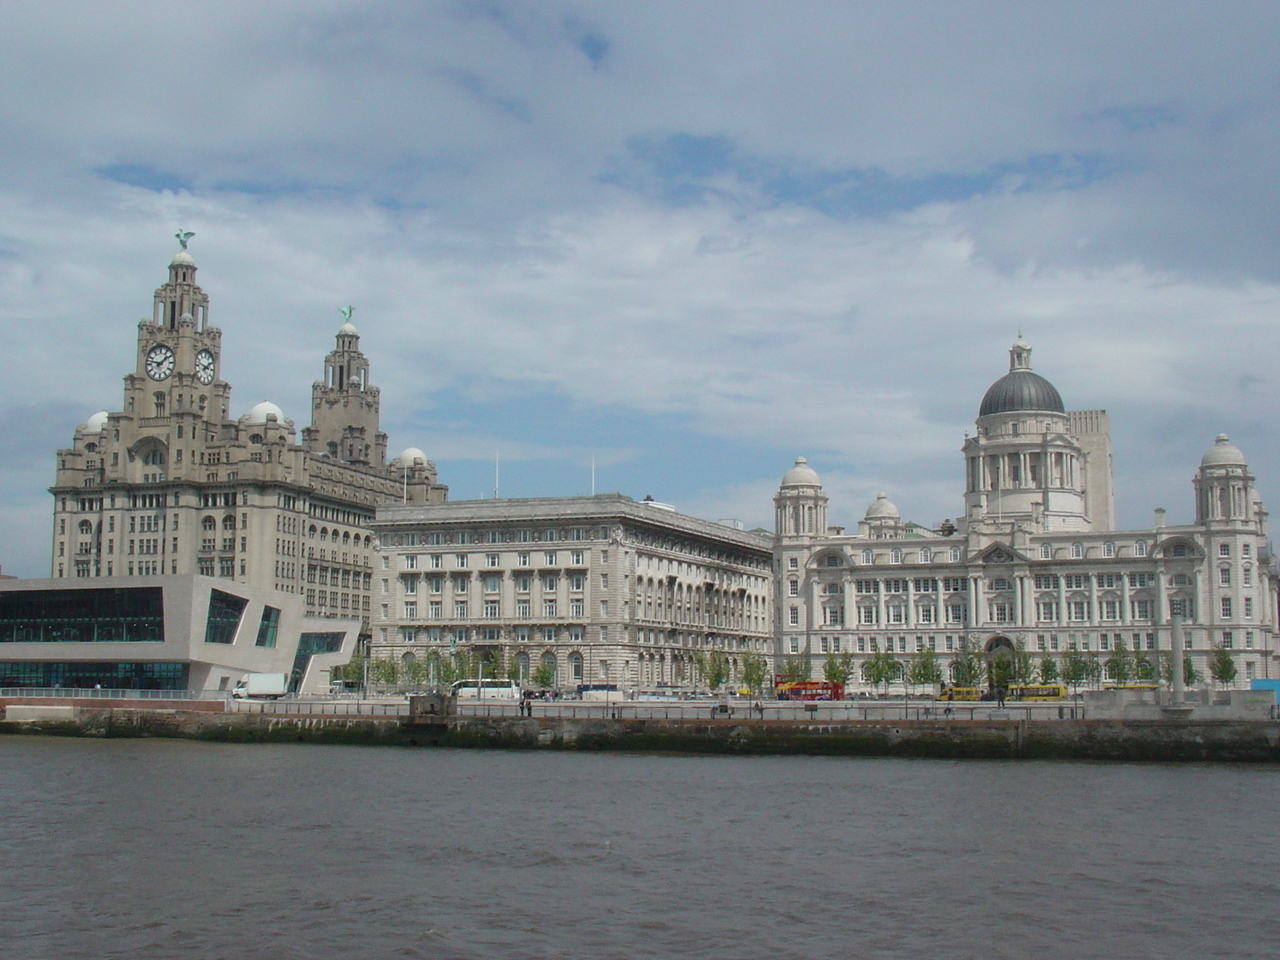 The 3 Graces at Liverpool Waterfront